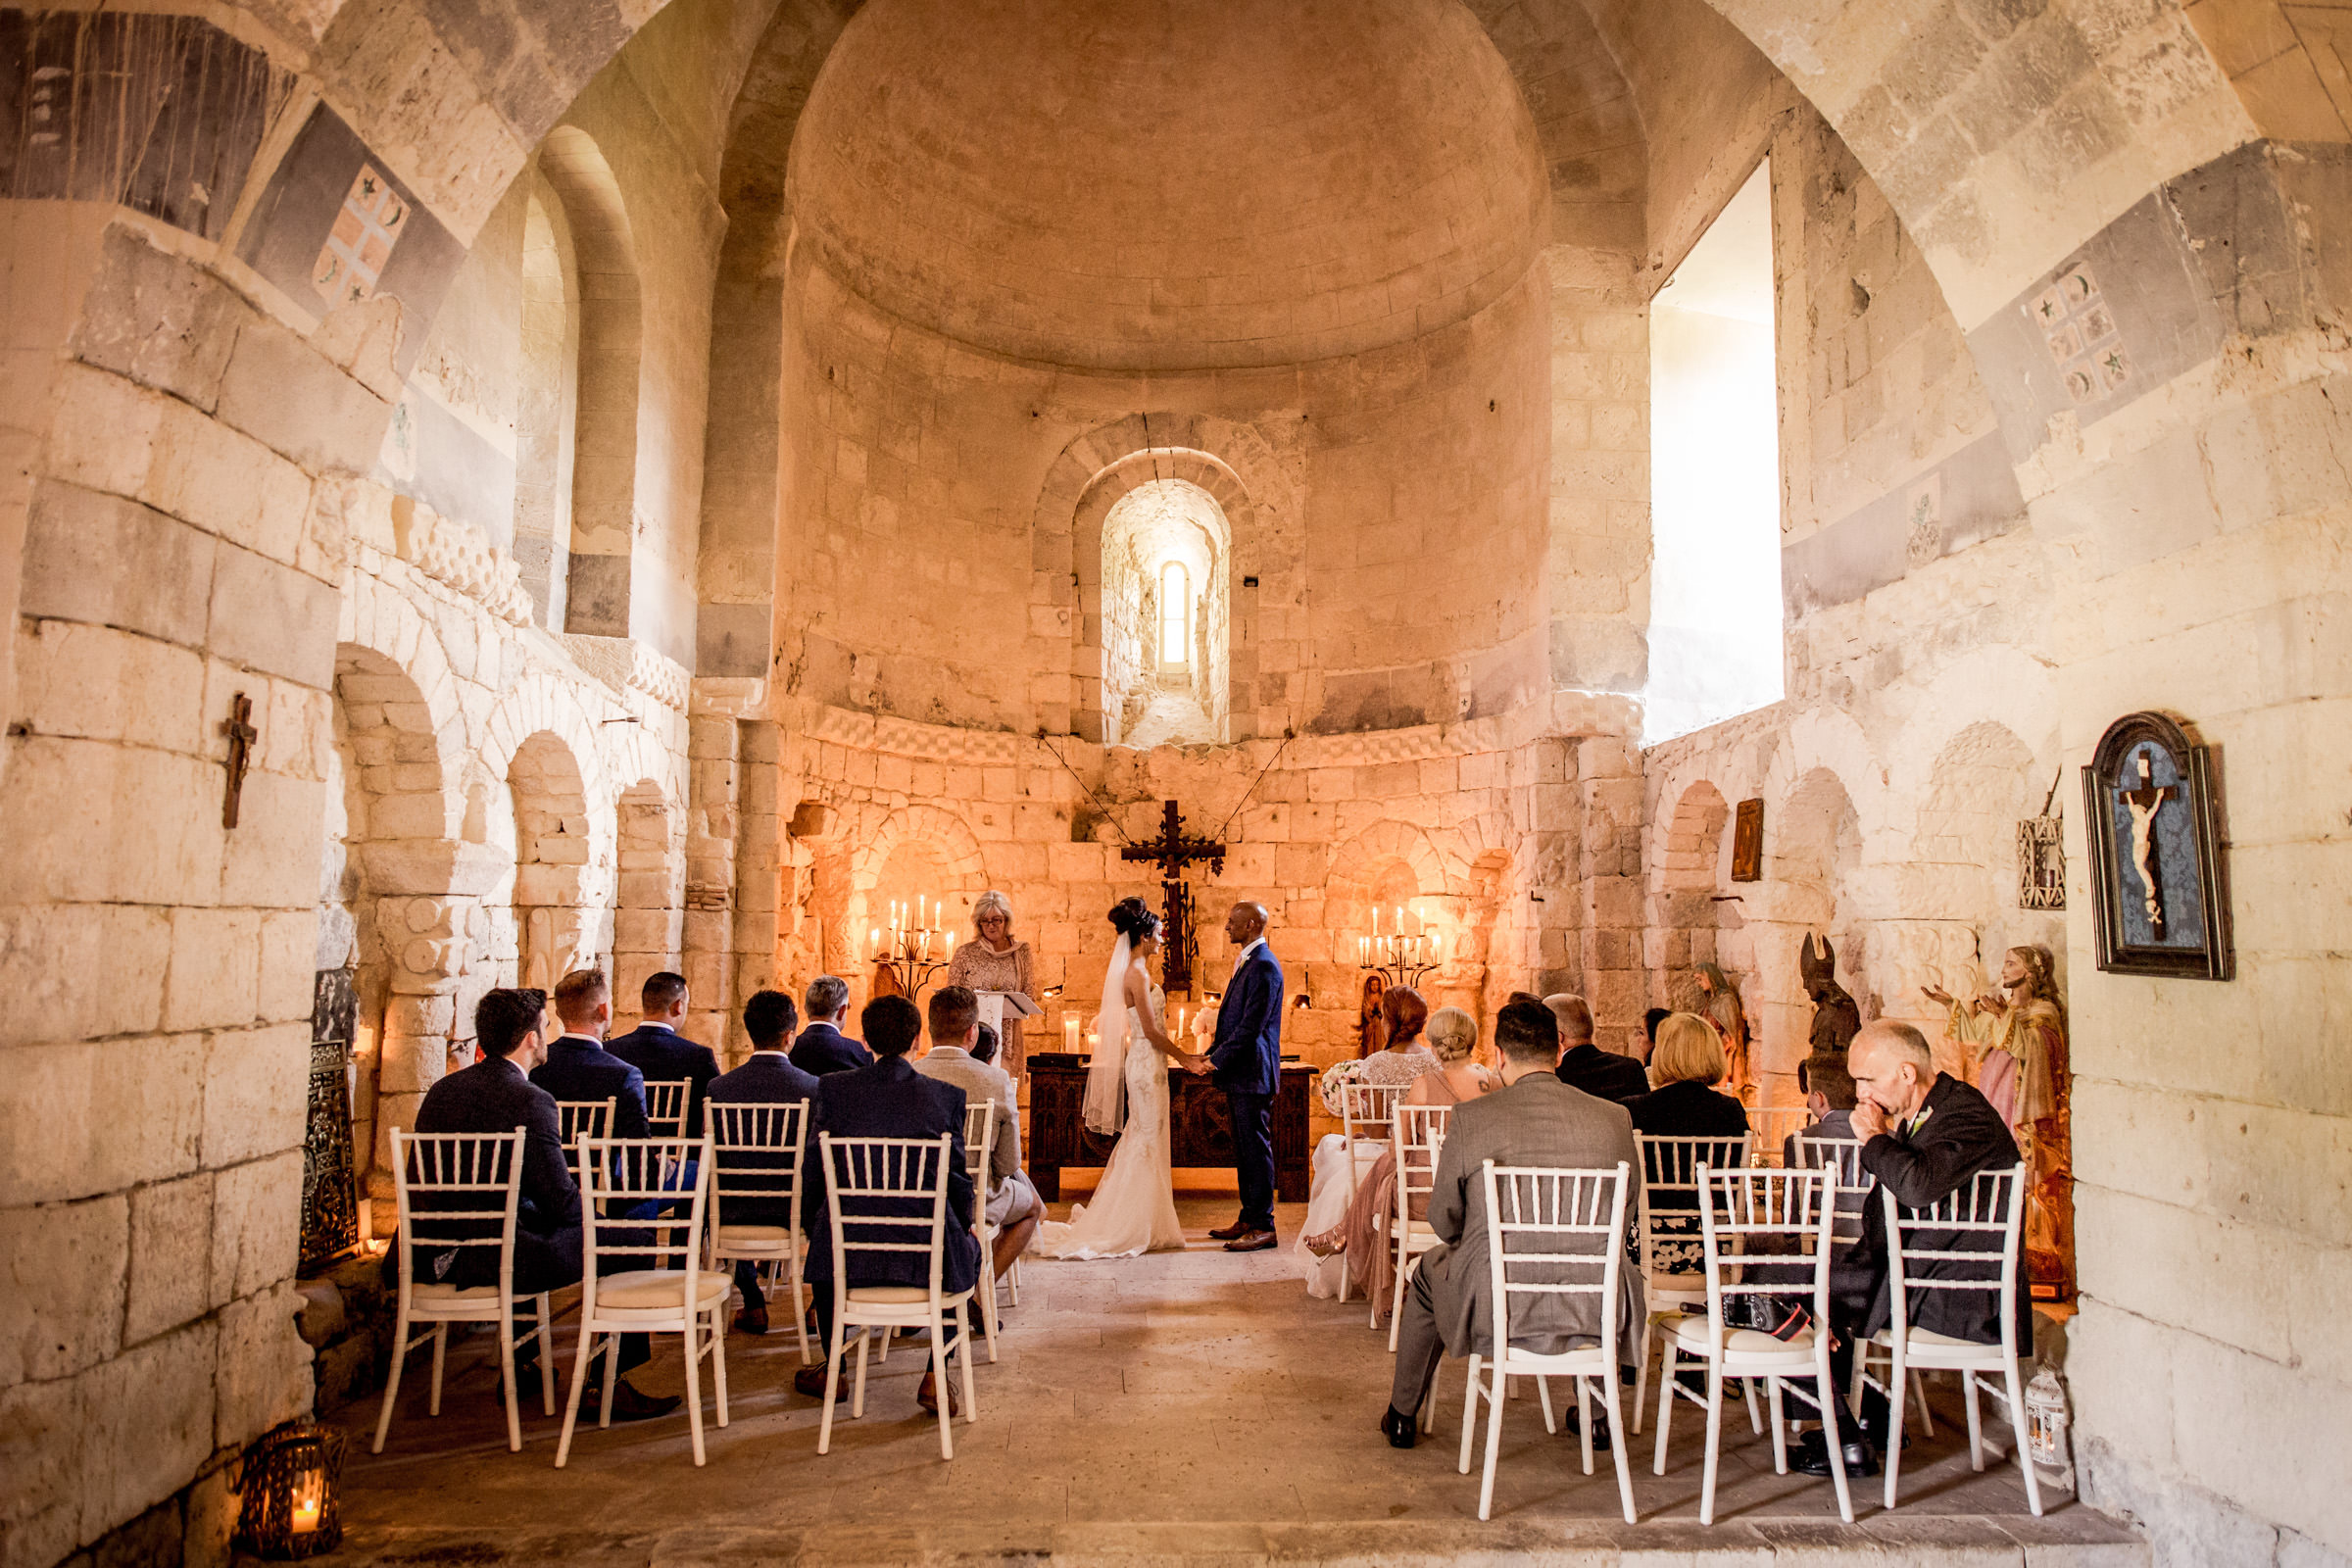 Uk Wedding photographers working at chateau de lisse in gascony 032.jpg